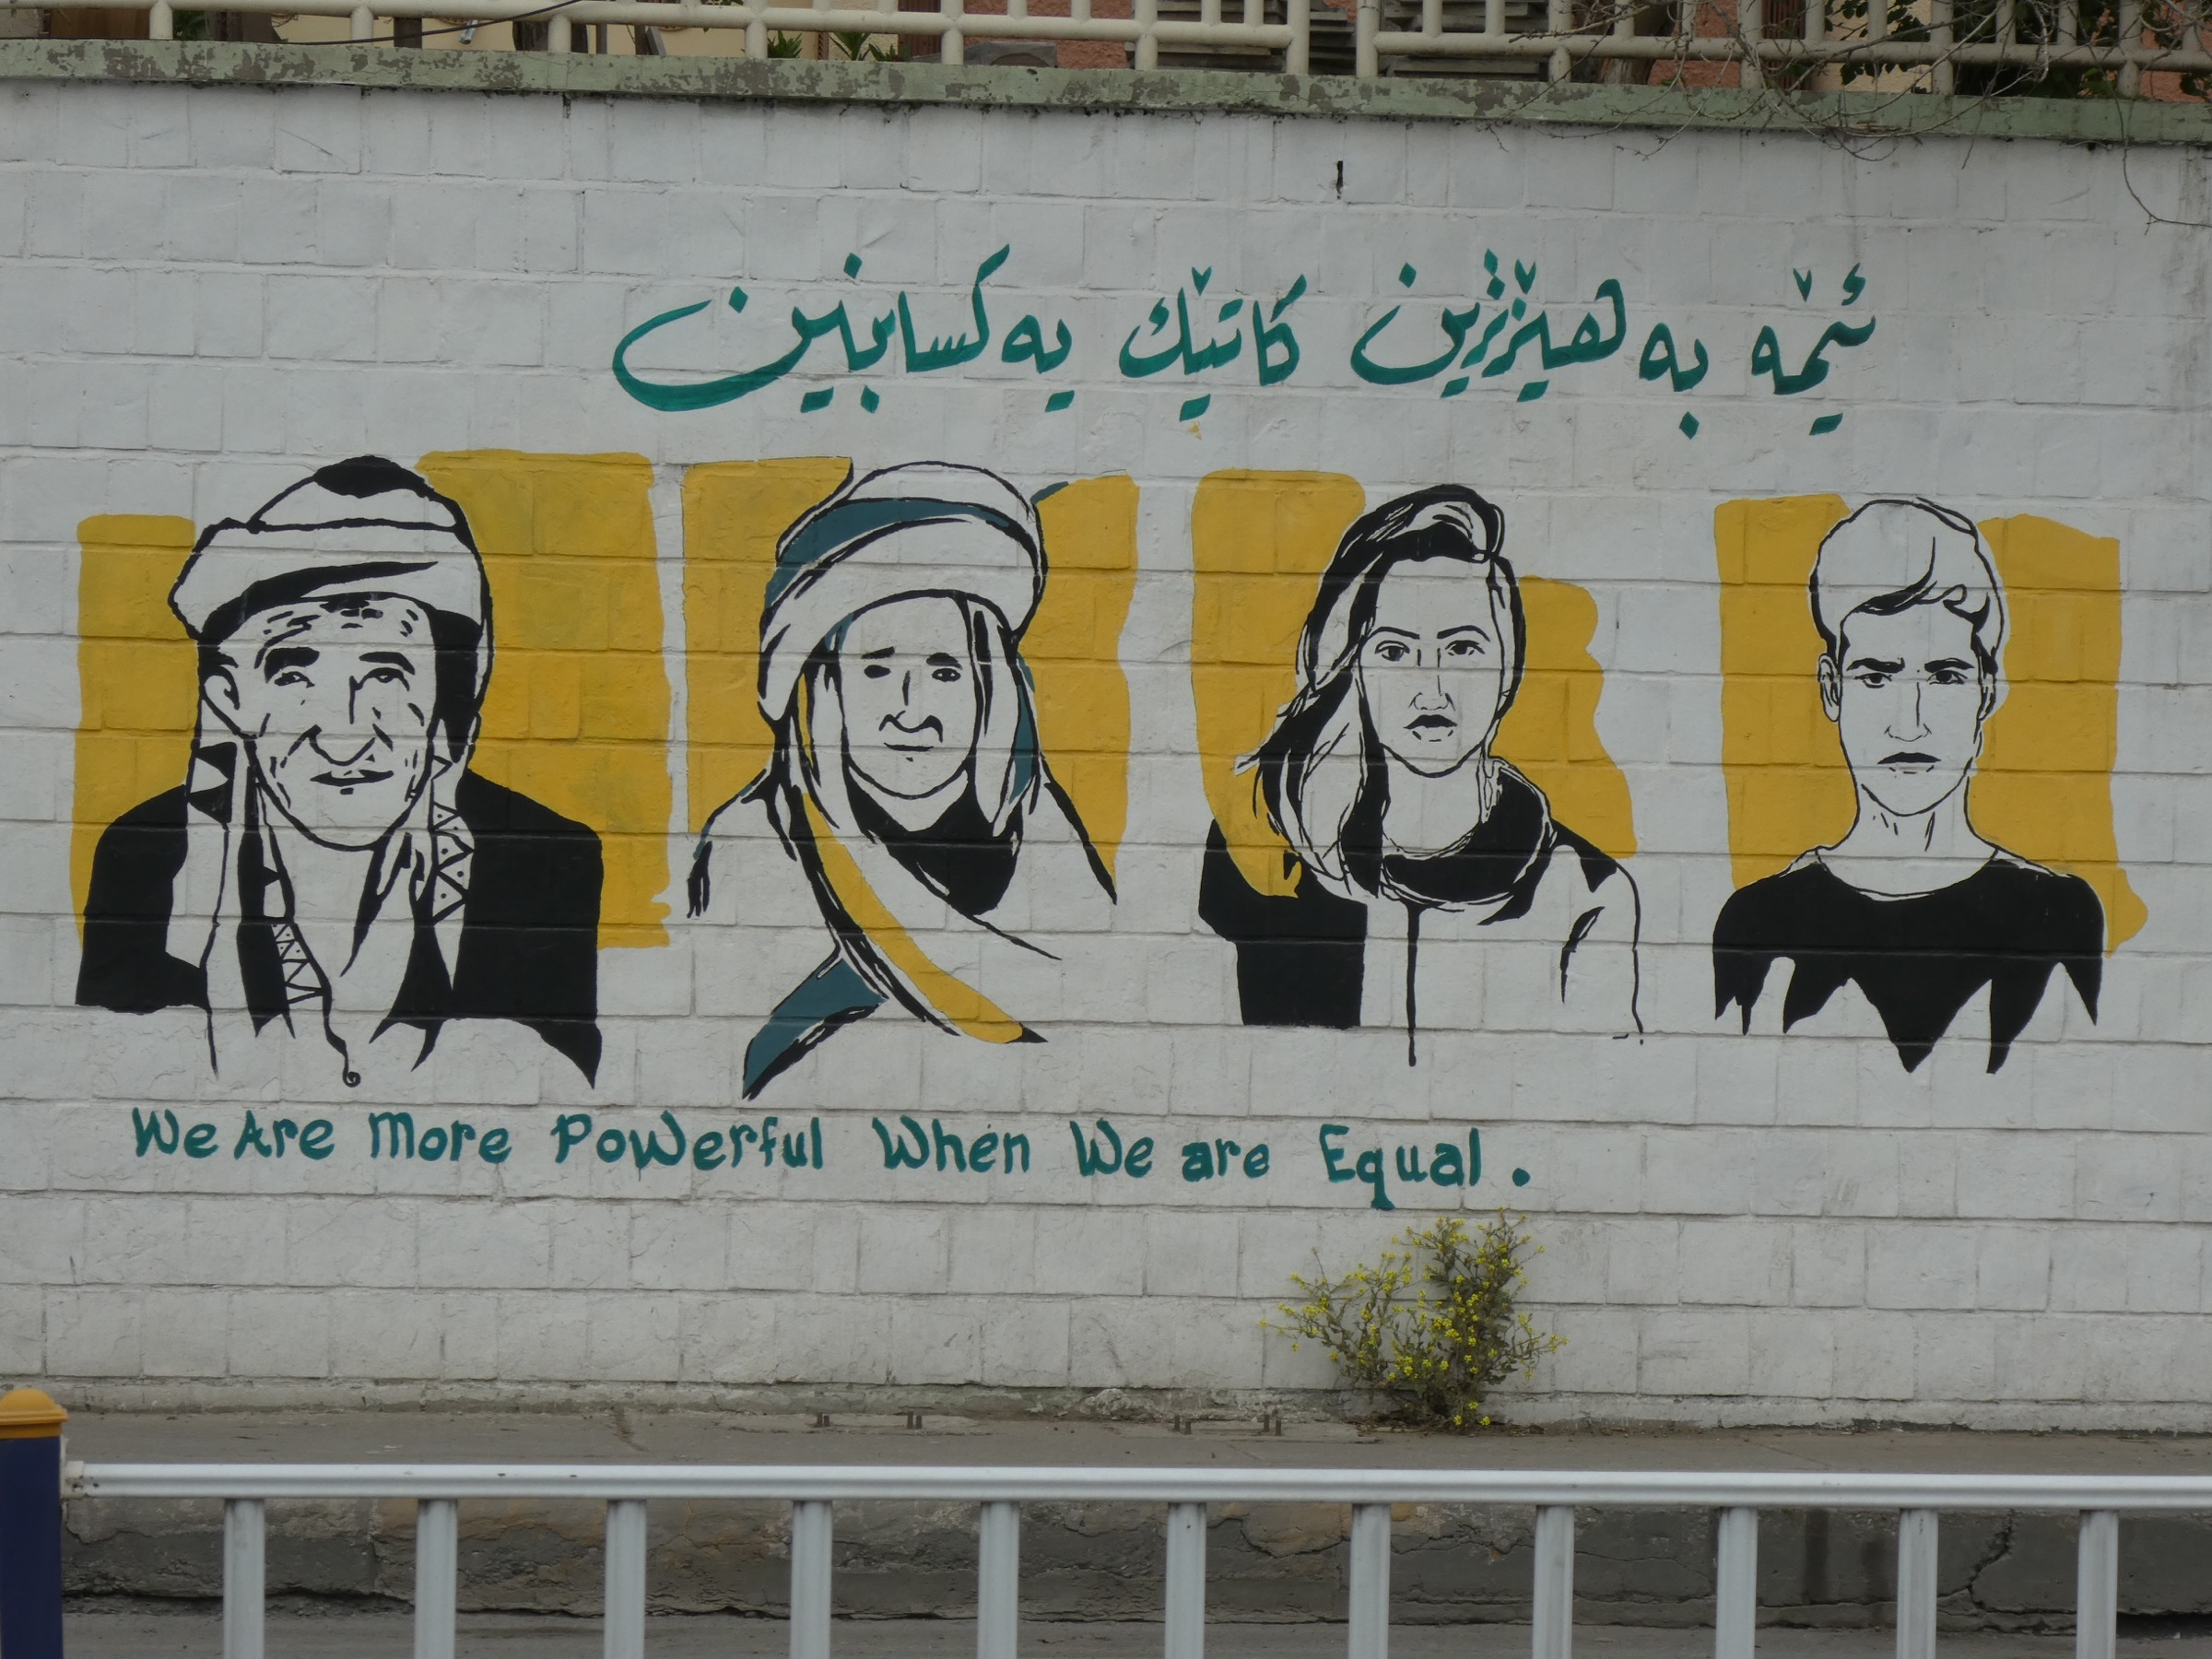 A mural in the Kurdish city of Slemani illustrates the relatively progressive views found in this part of Iraq. Photograph by Erica Gies